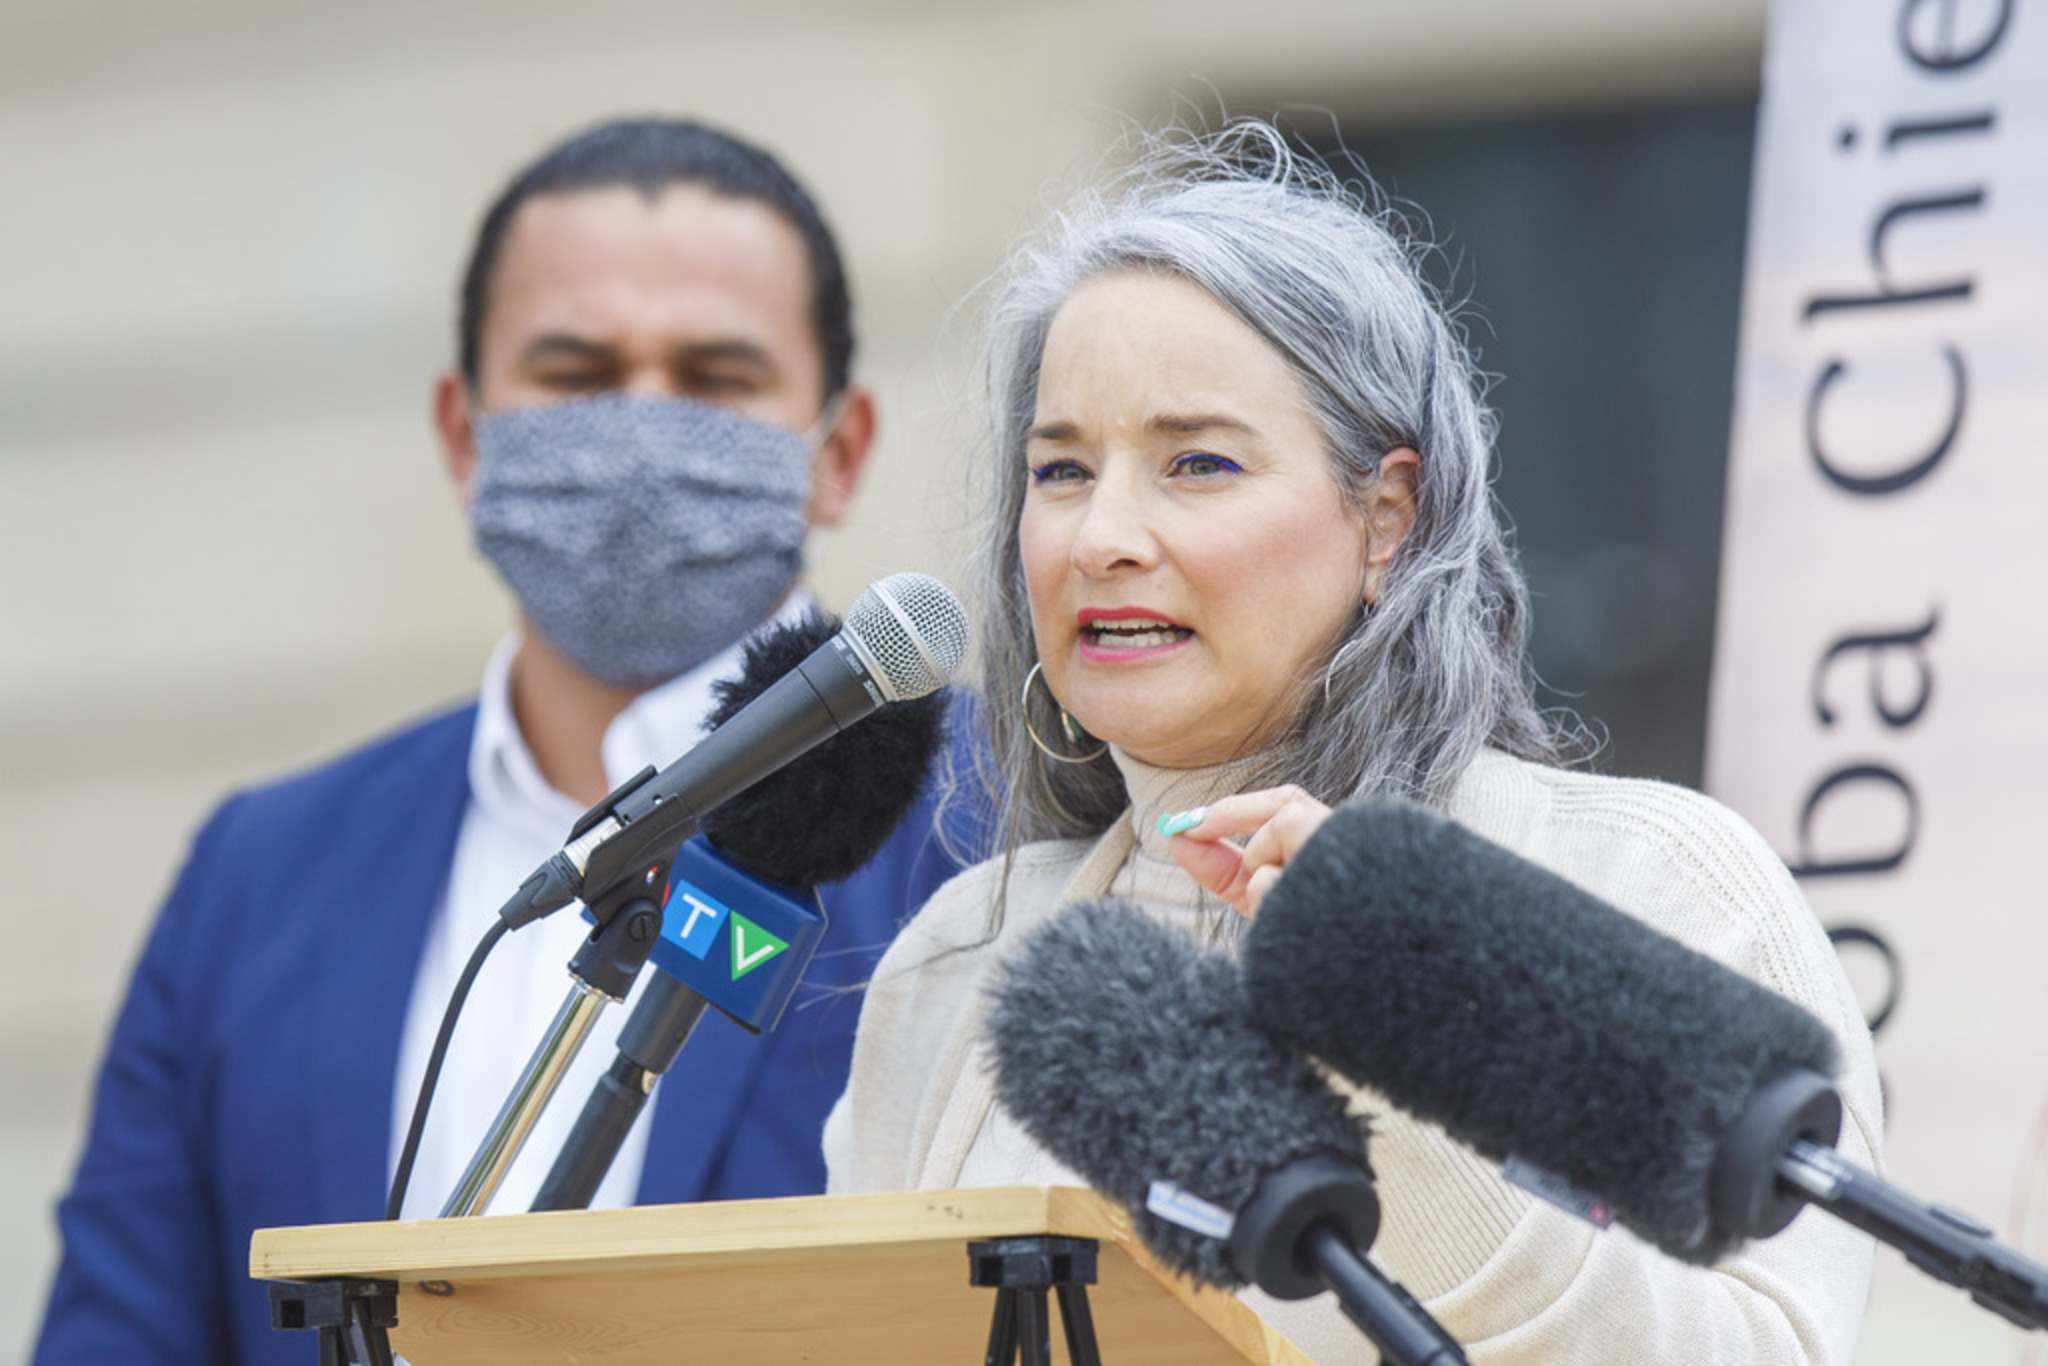 """MIKE DEAL / WINNIPEG FREE PRESS FILES</p><p>NDP justice critic Nahanni Fontaine: """"When we're looking at personal care homes, what we've seen is a failure to protect residents and staff.""""</p>"""